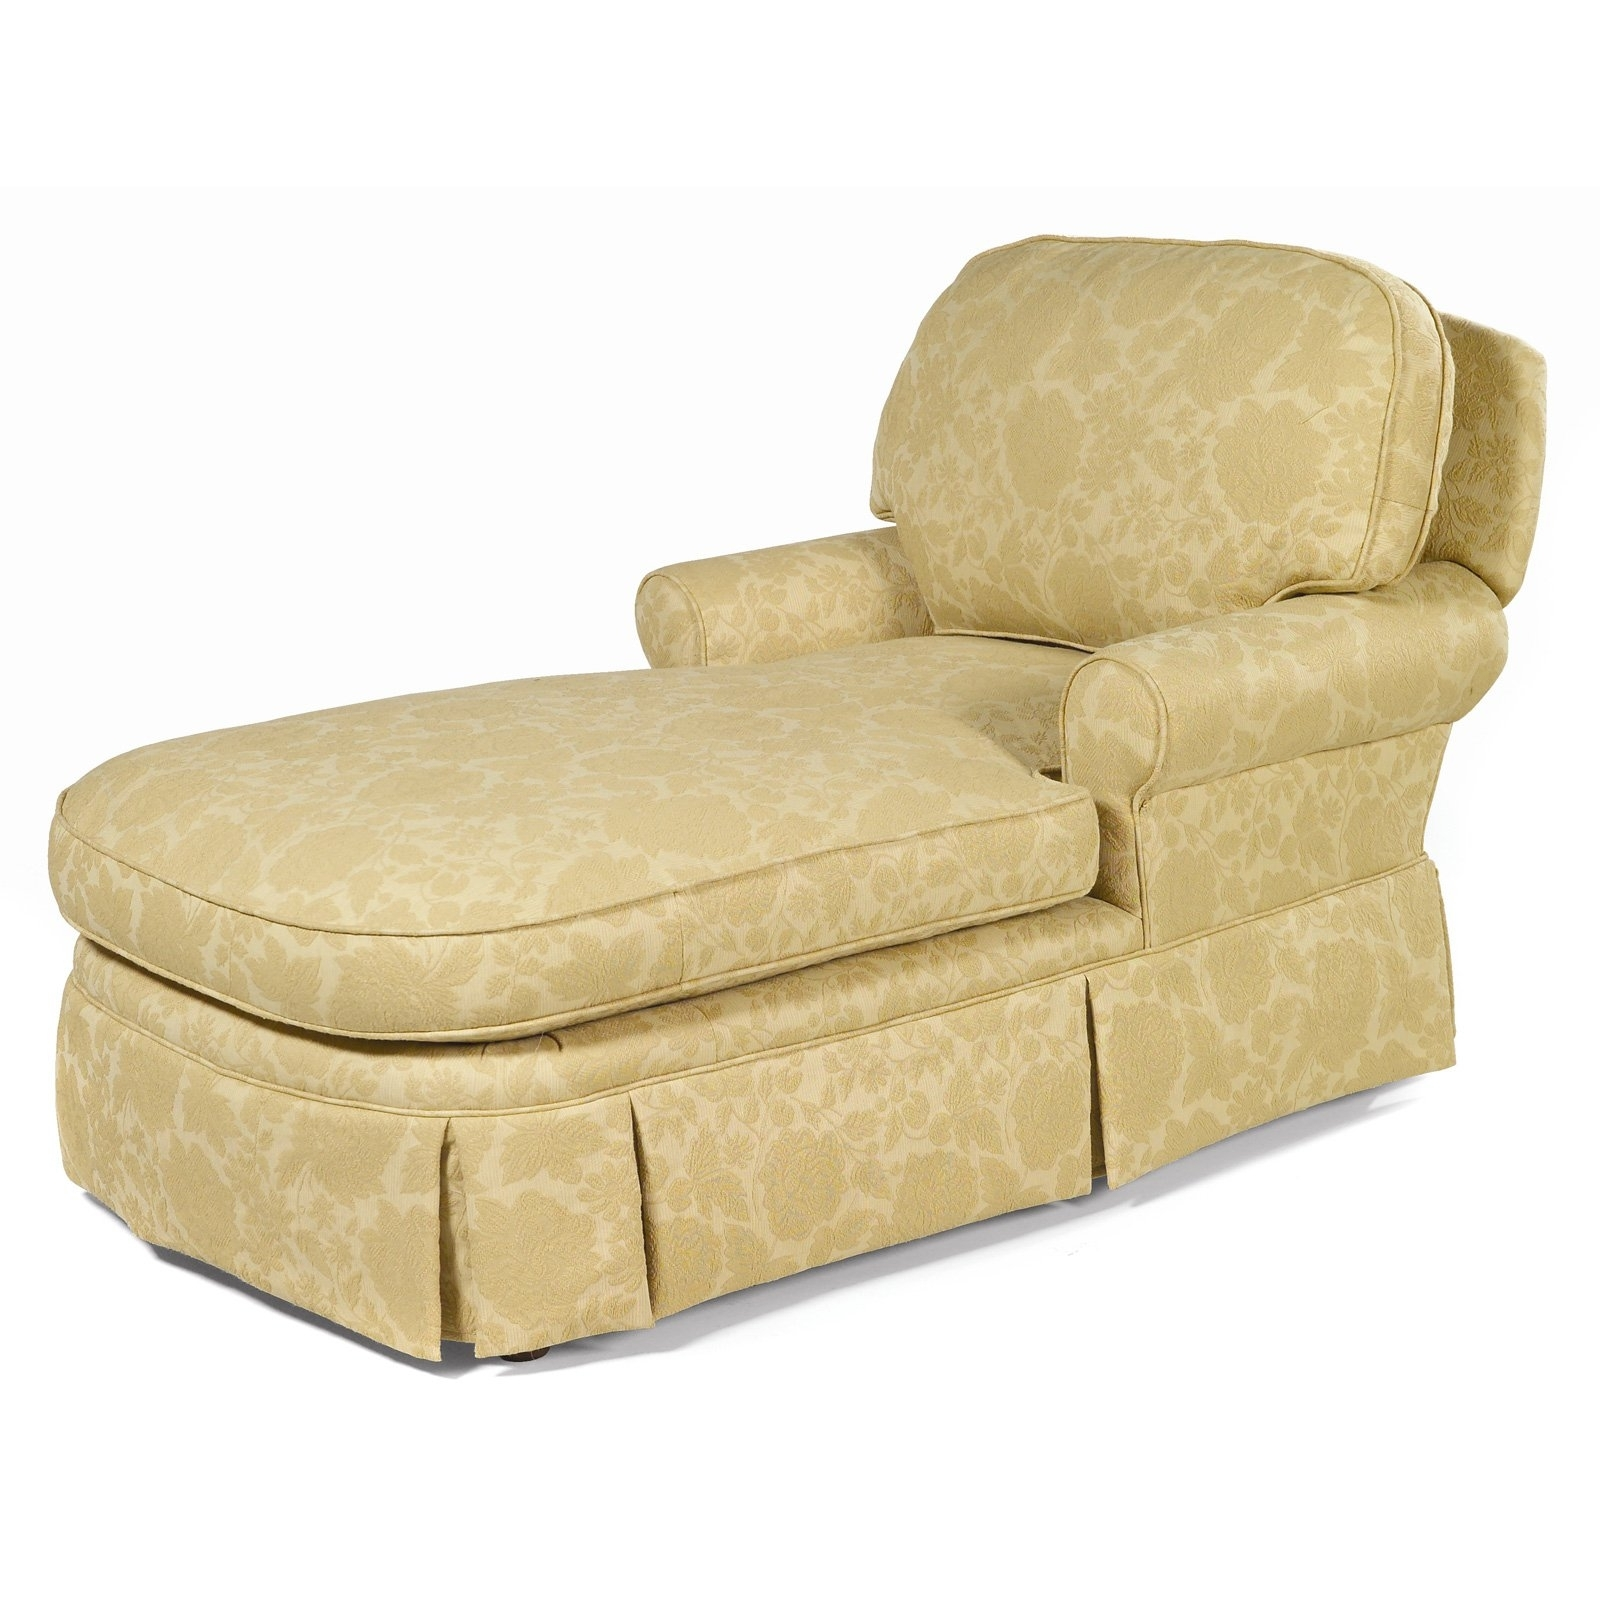 Indoor Chaise Lounge Chairs Under $200 : Best Futons & Chaise Throughout 2017 Chaise Lounge Chairs Under $ (View 3 of 15)